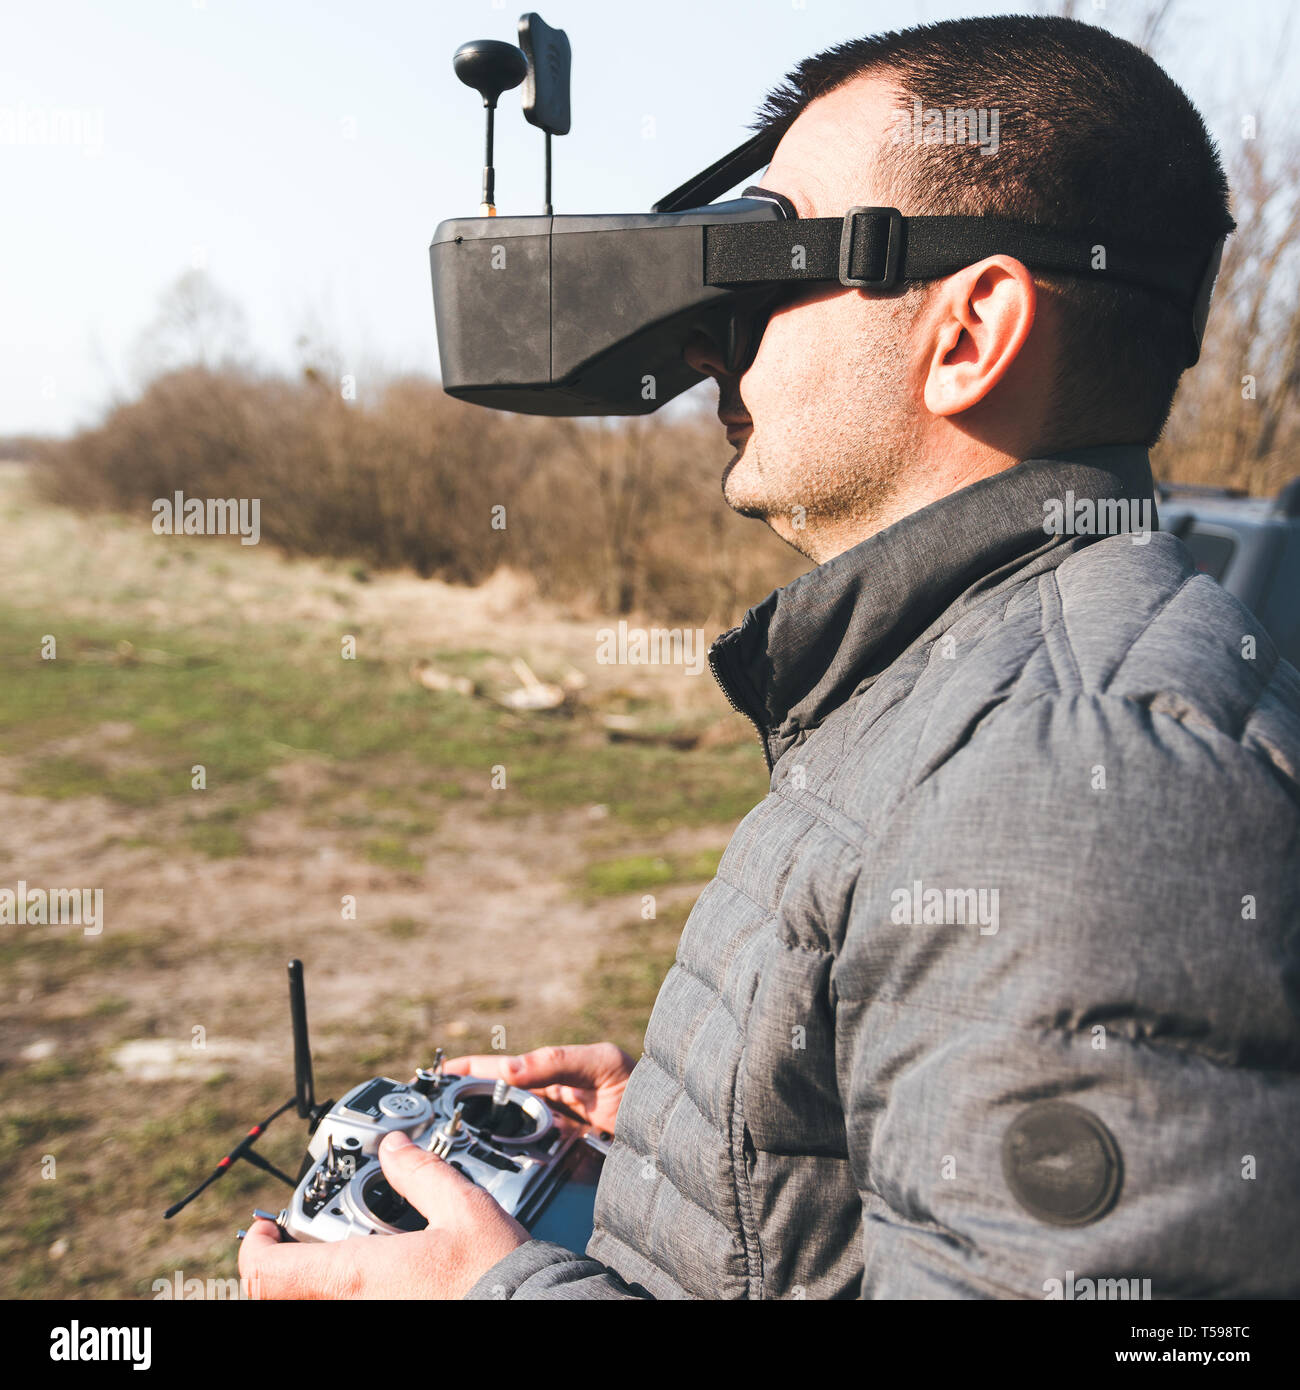 A man manages FPV drone in VR glasses Stock Photo: 244222956